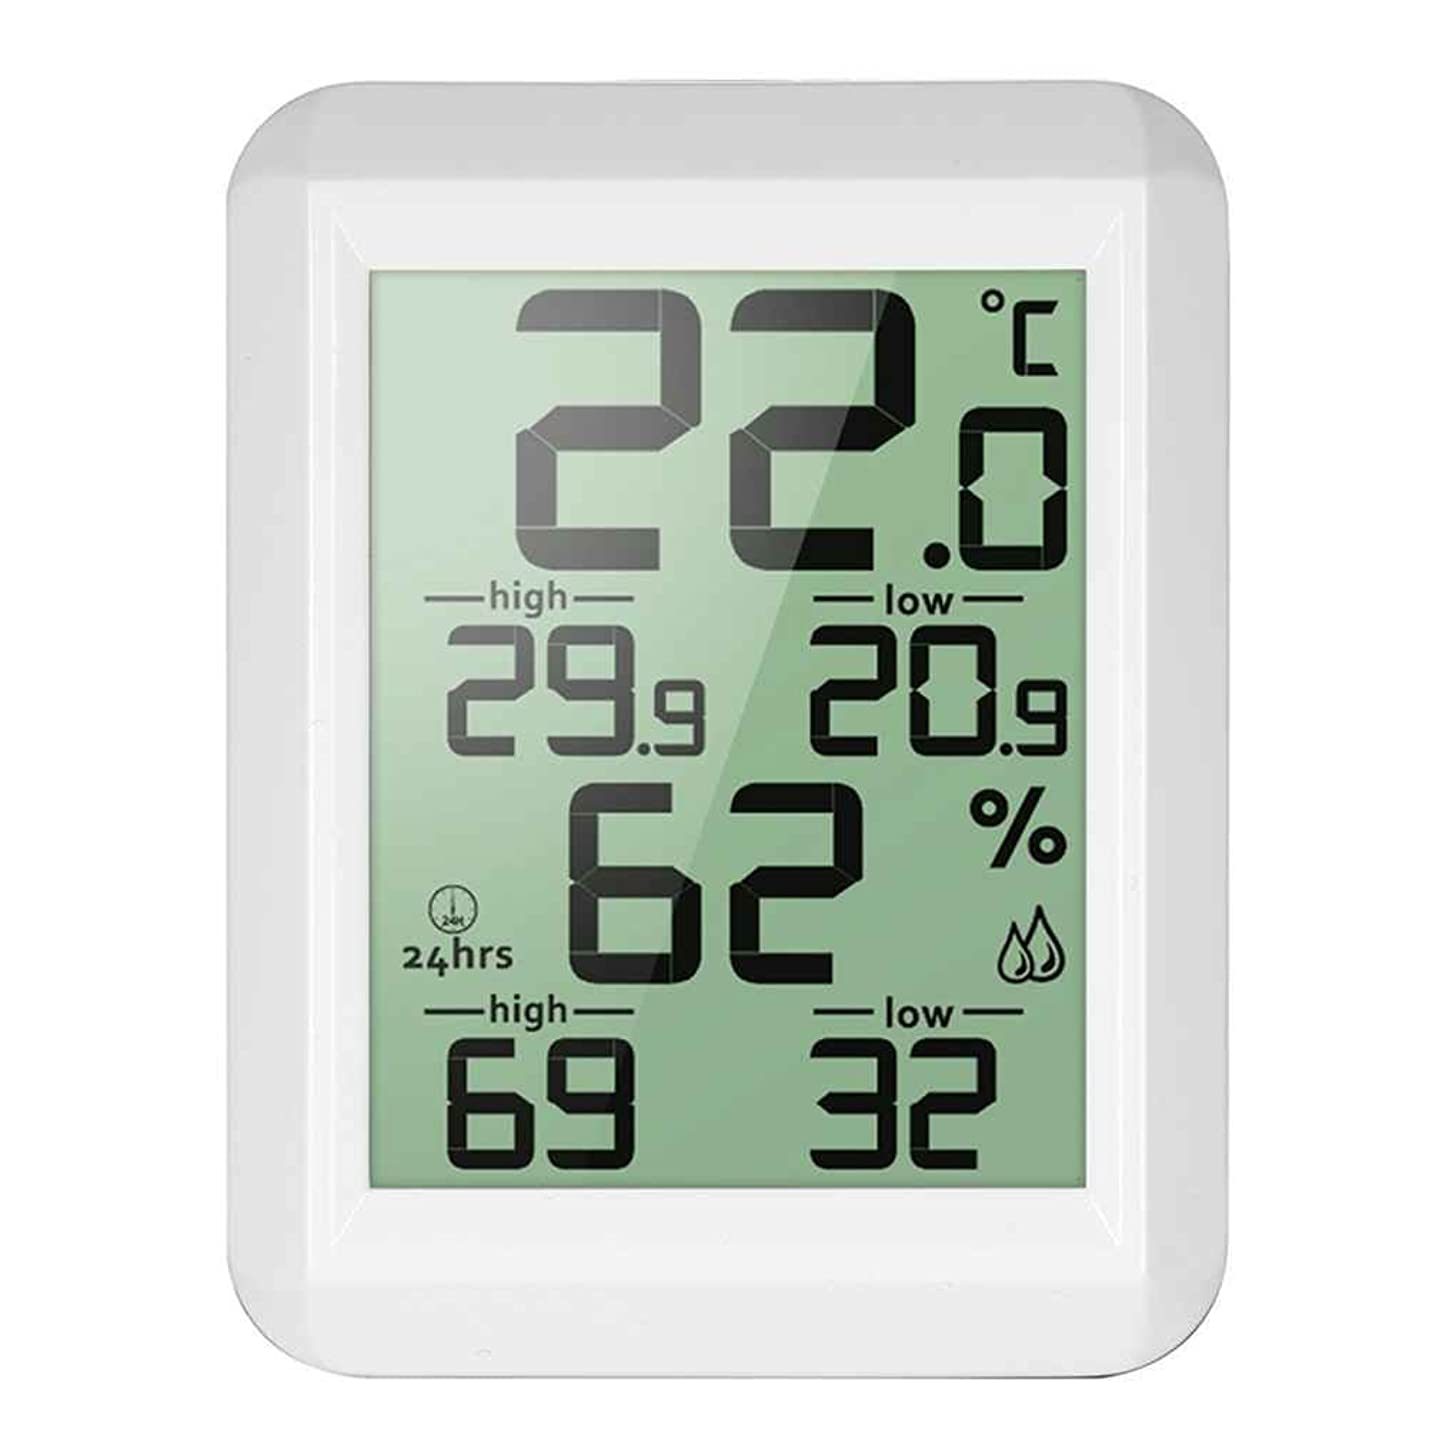 Firiodr Digital LCD Thermometer Hygrometer Electronic Temperature Humidity Meter MIN/MAX Records Indoor Weather Station